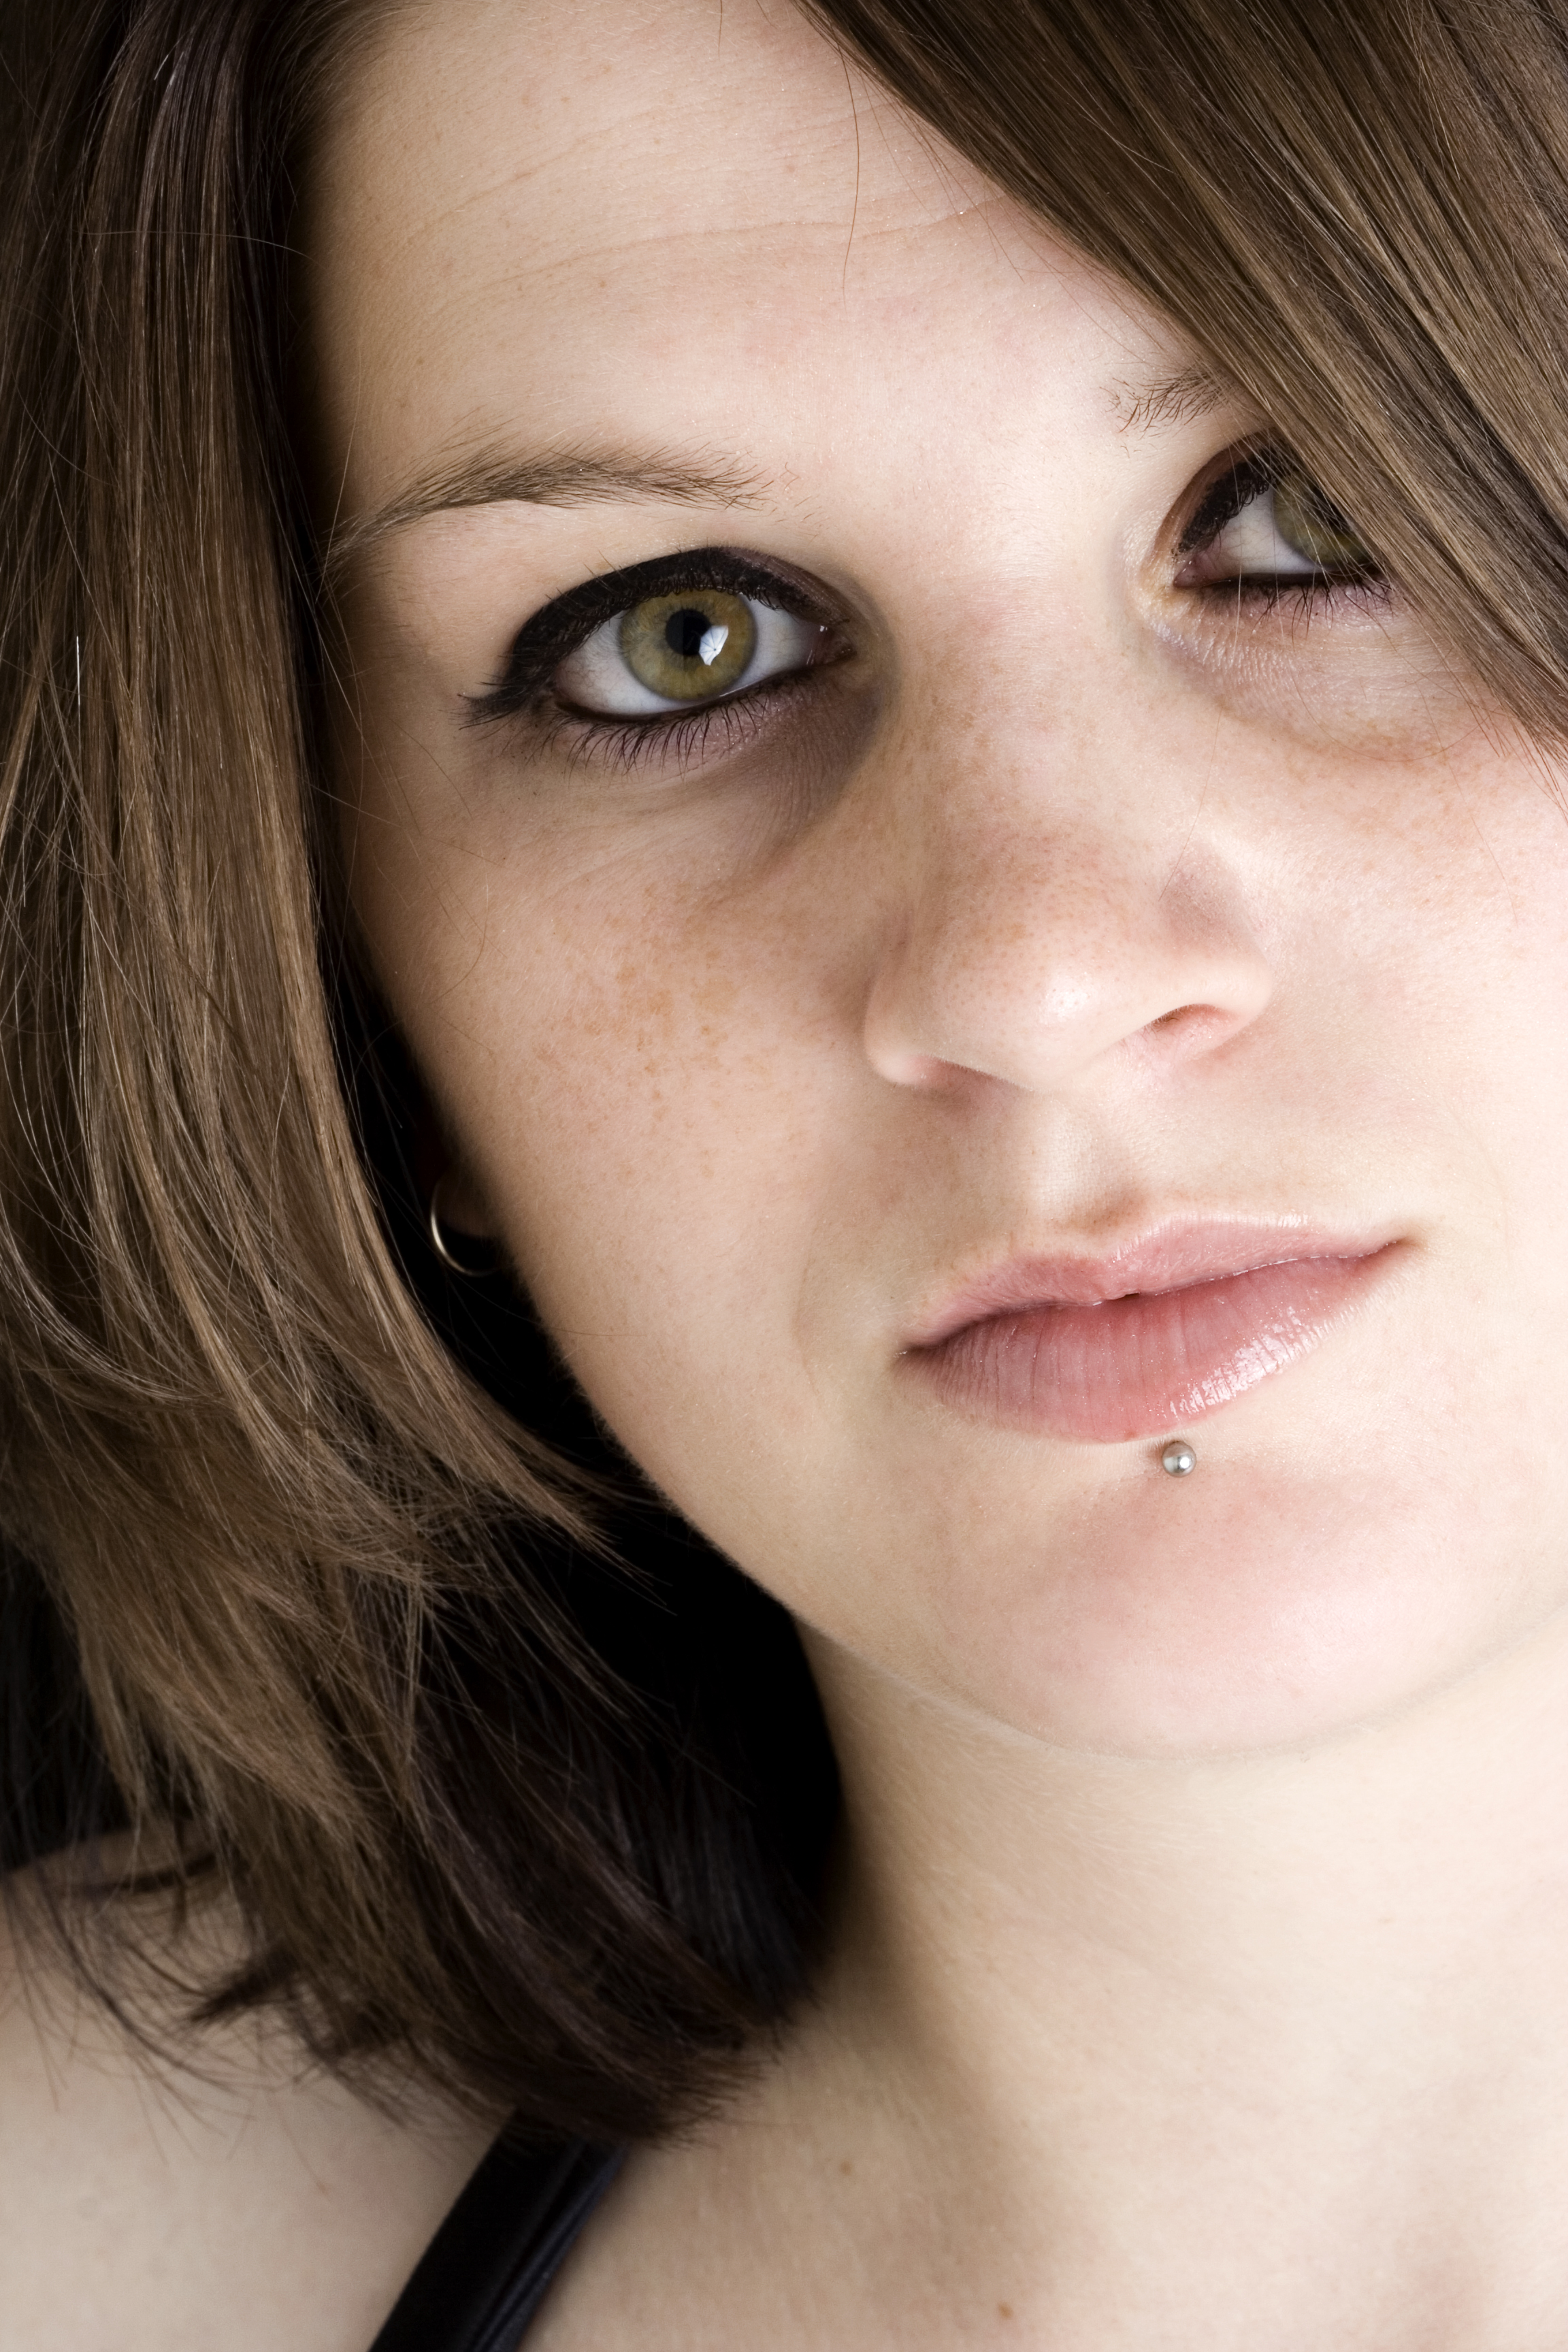 Discussion on this topic: How to Get a Labret Piercing, how-to-get-a-labret-piercing/